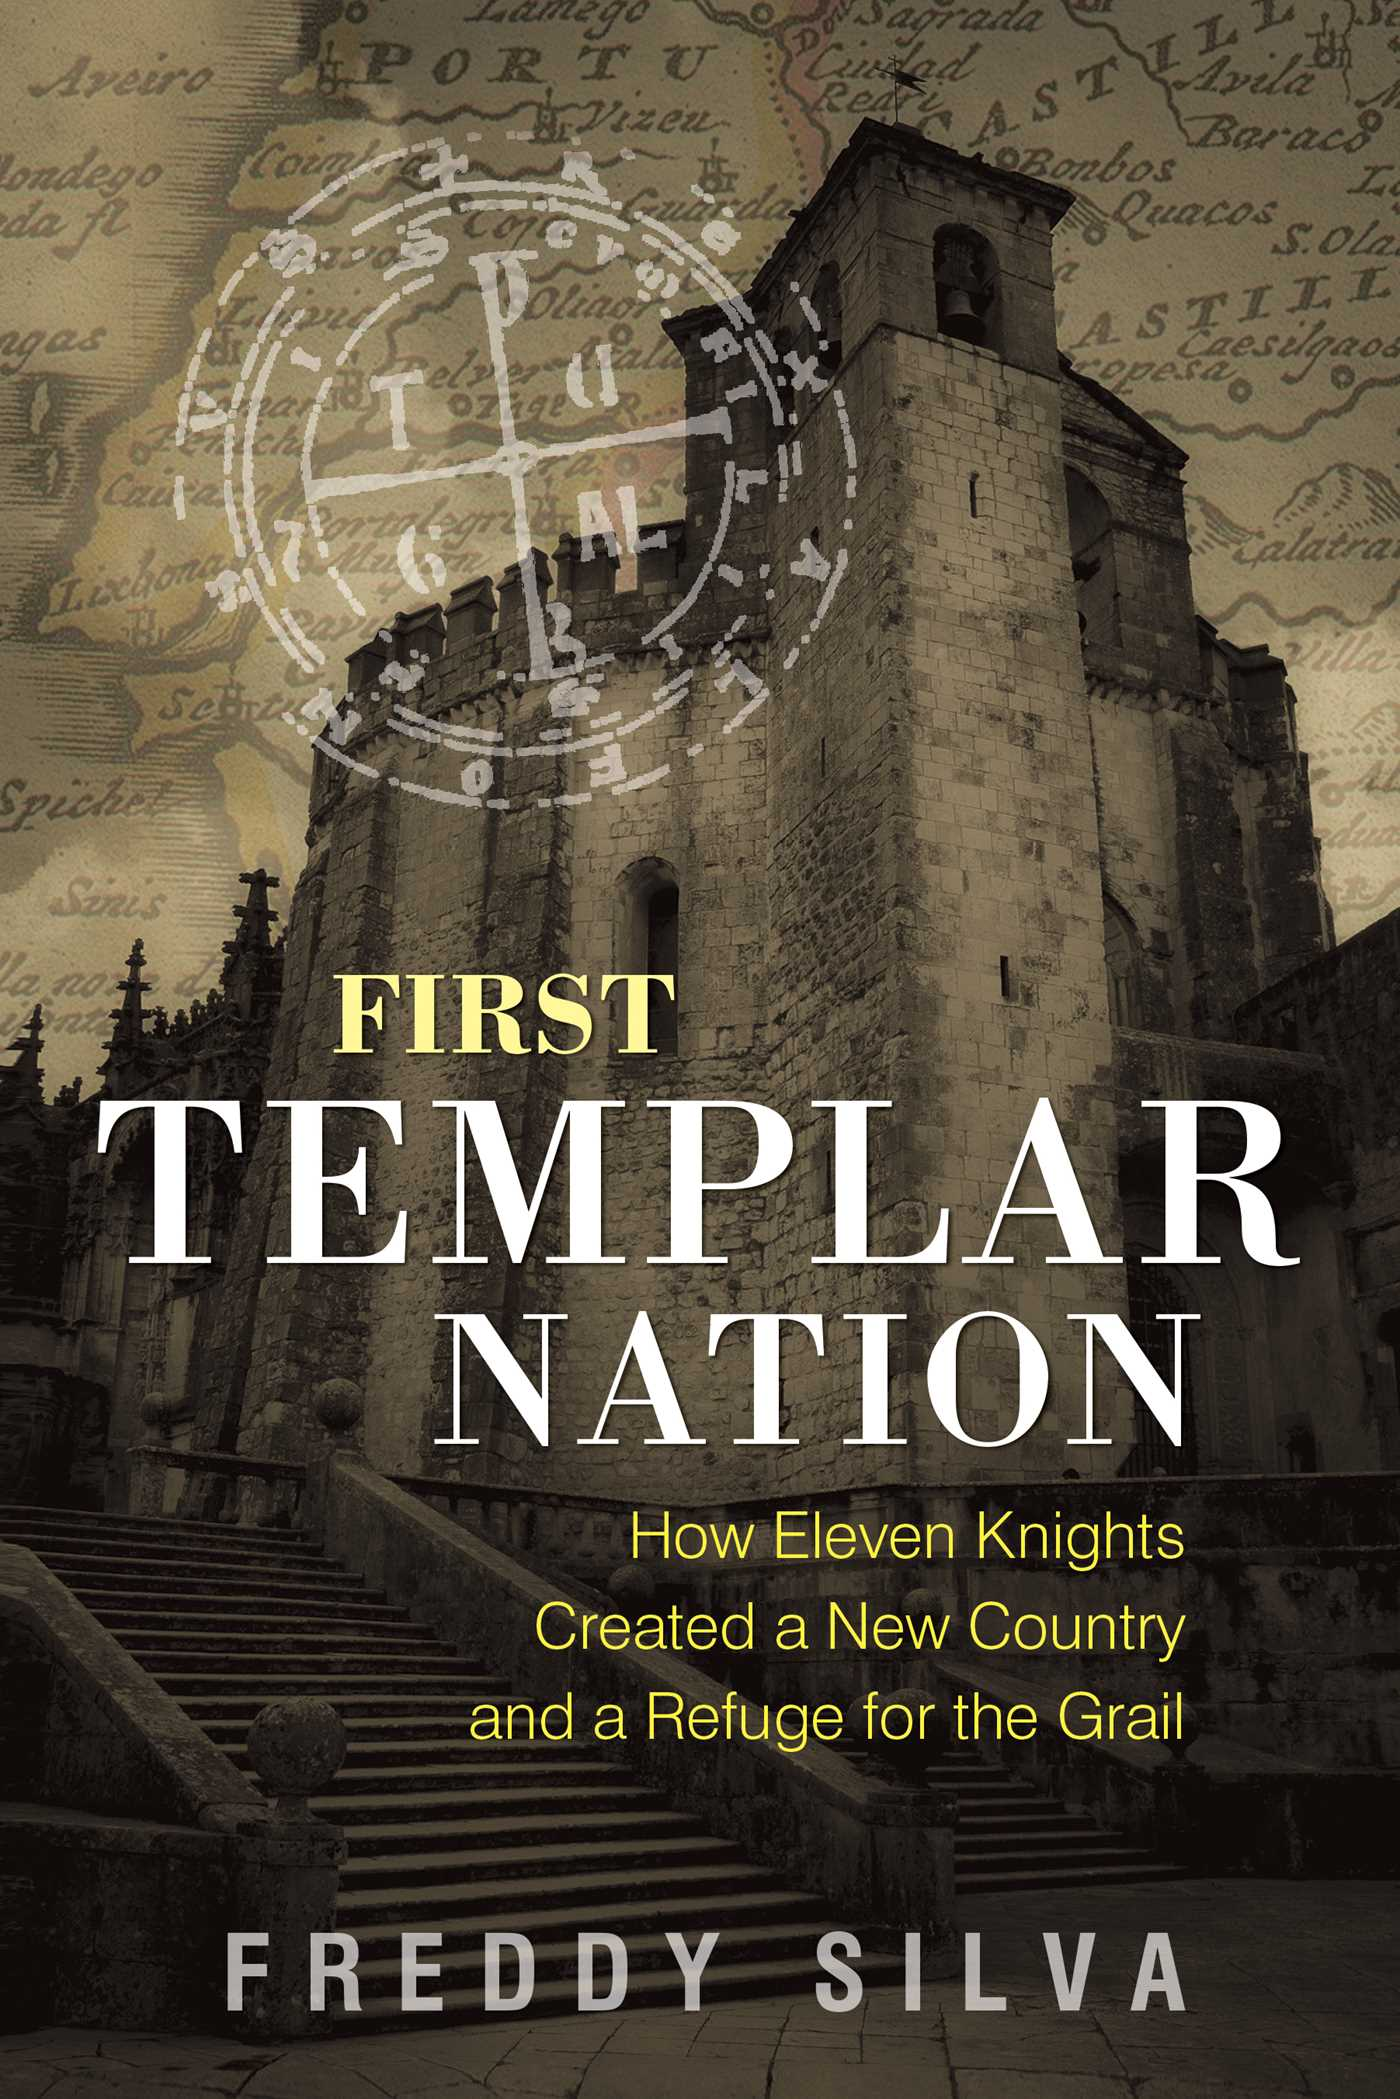 First templar nation 9781620556542 hr